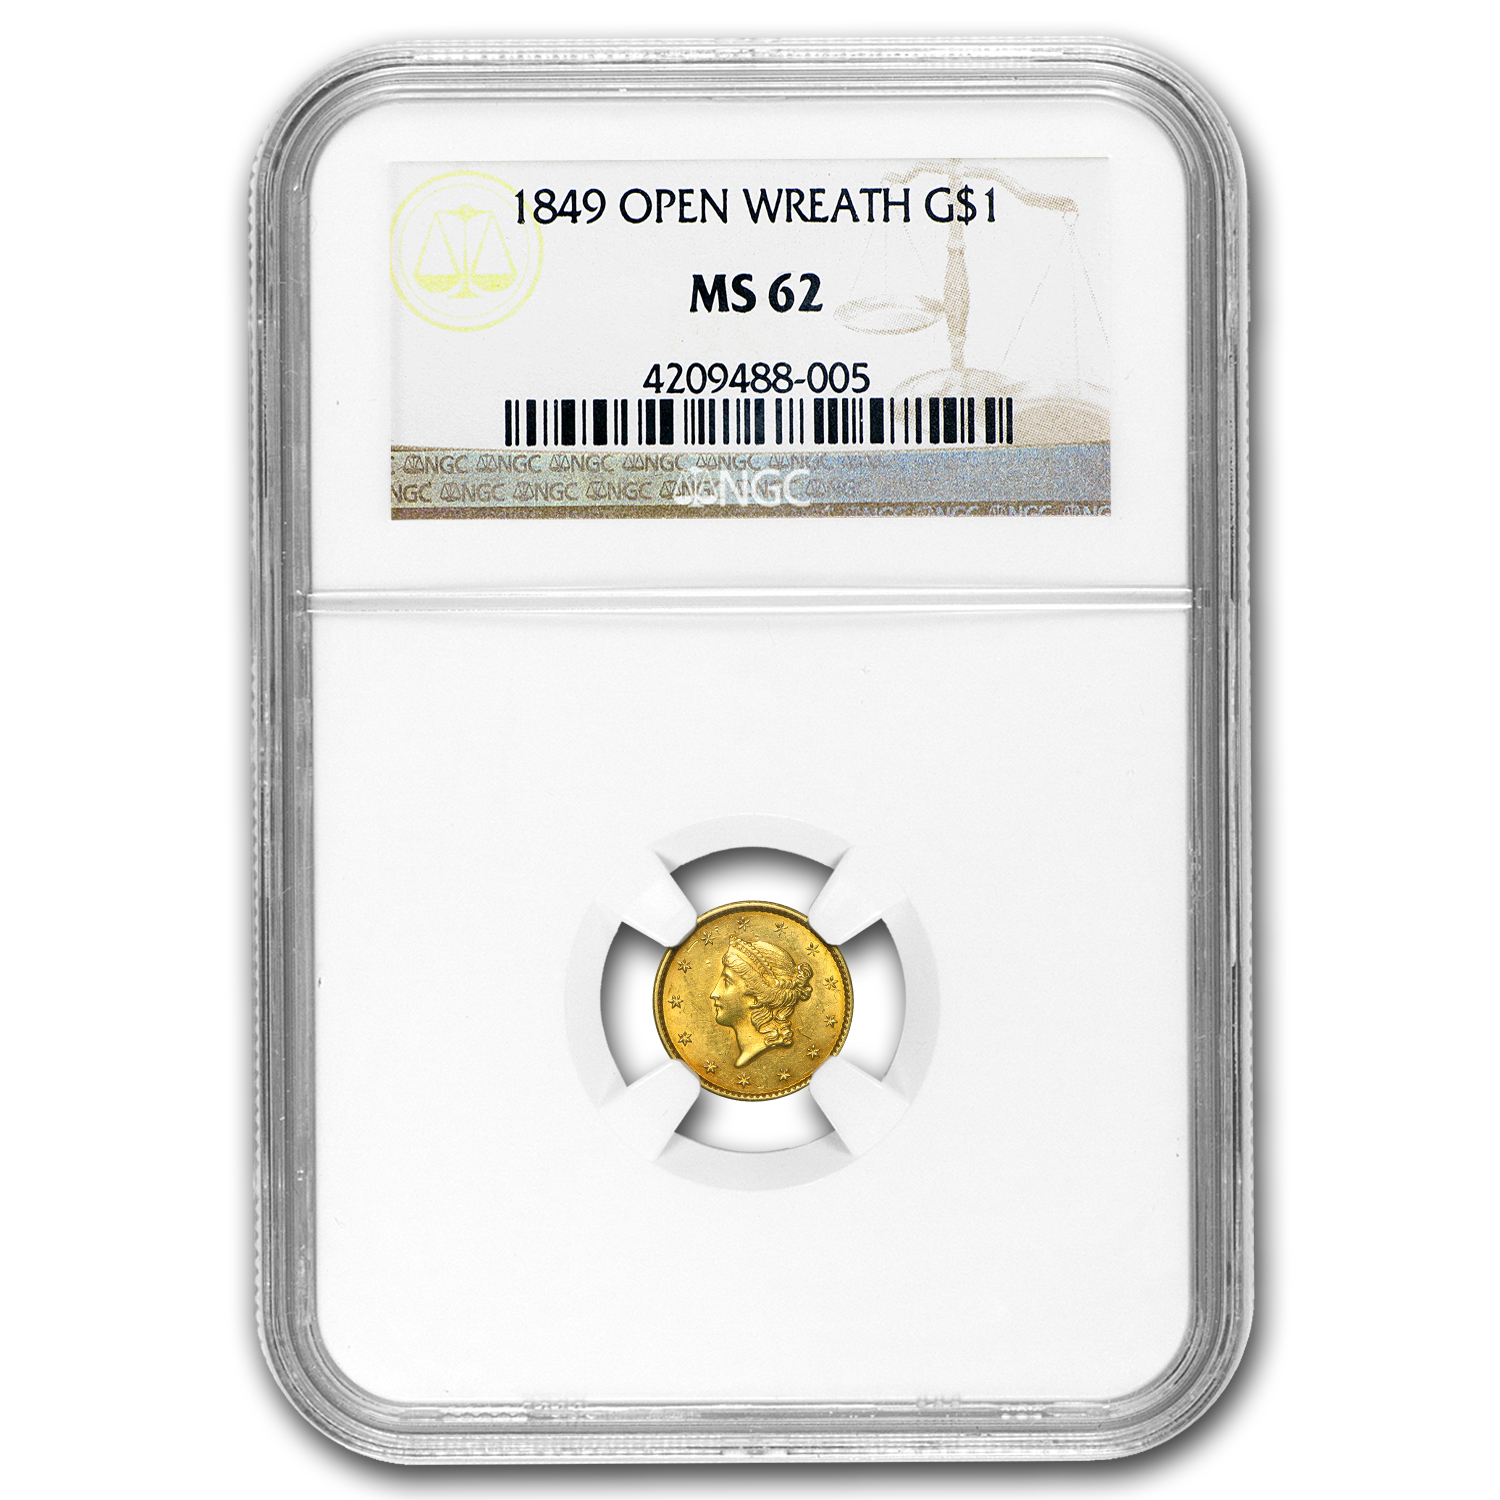 1849 $1 Liberty Gold Sm Head Open Wreath w/L MS-62 NGC